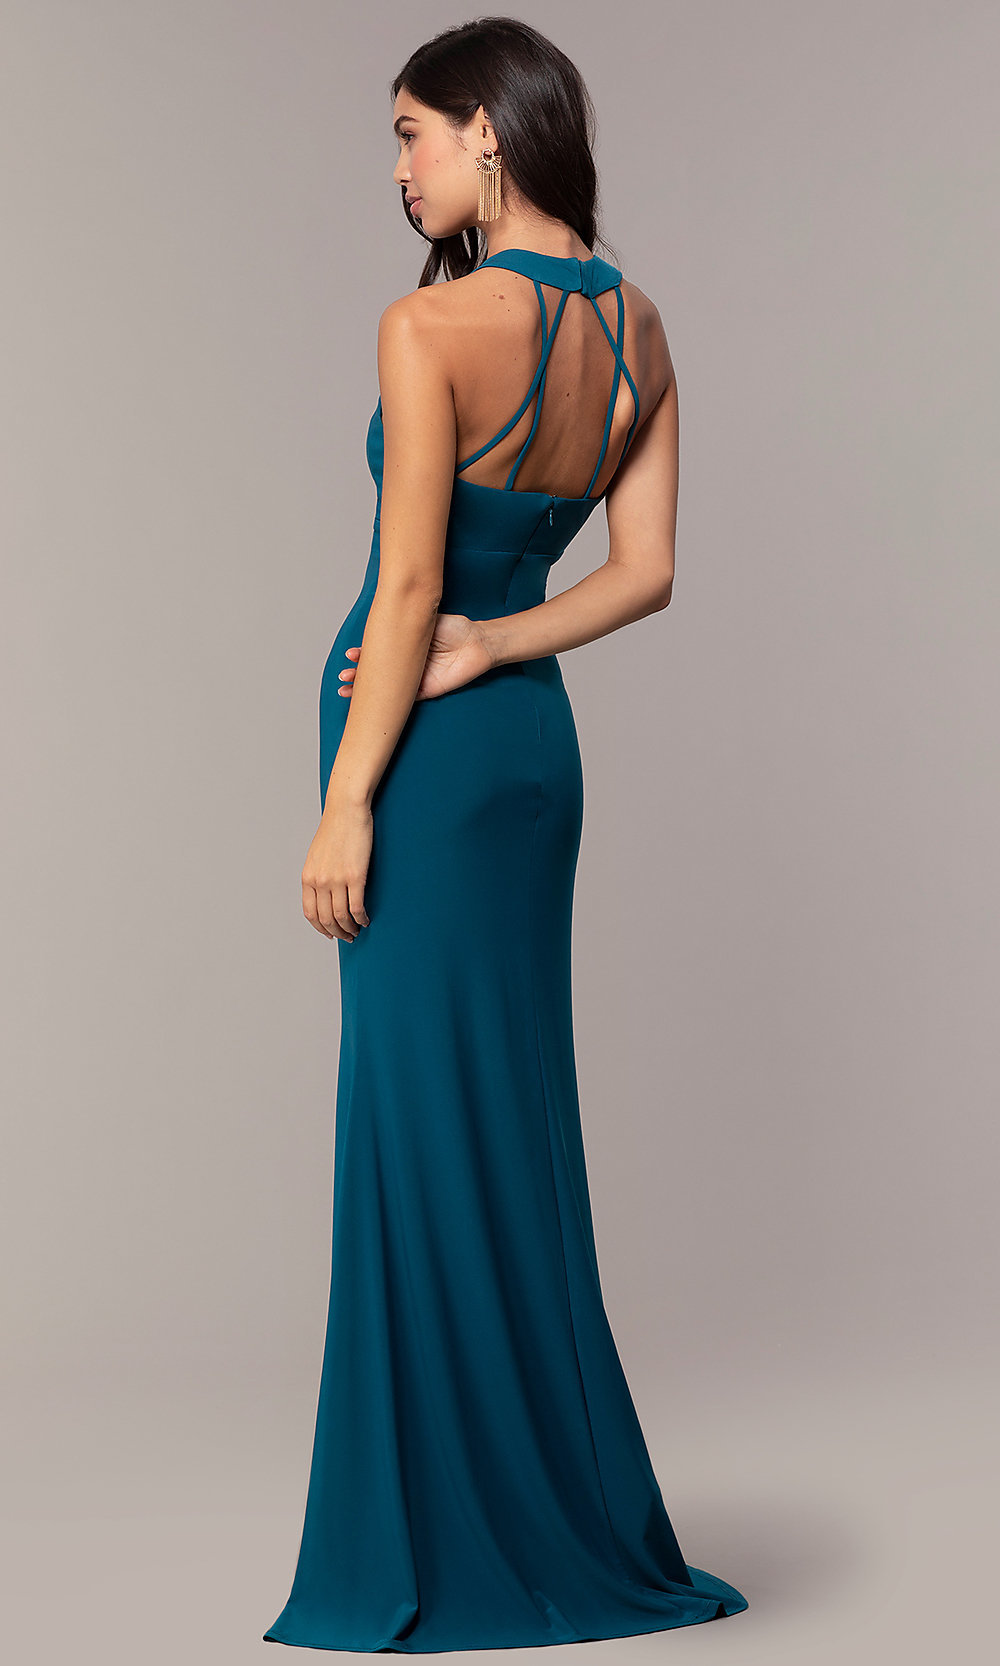 b2f17833373 Empire-Waist Open-Back High-Neck Prom Dress - PromGirl